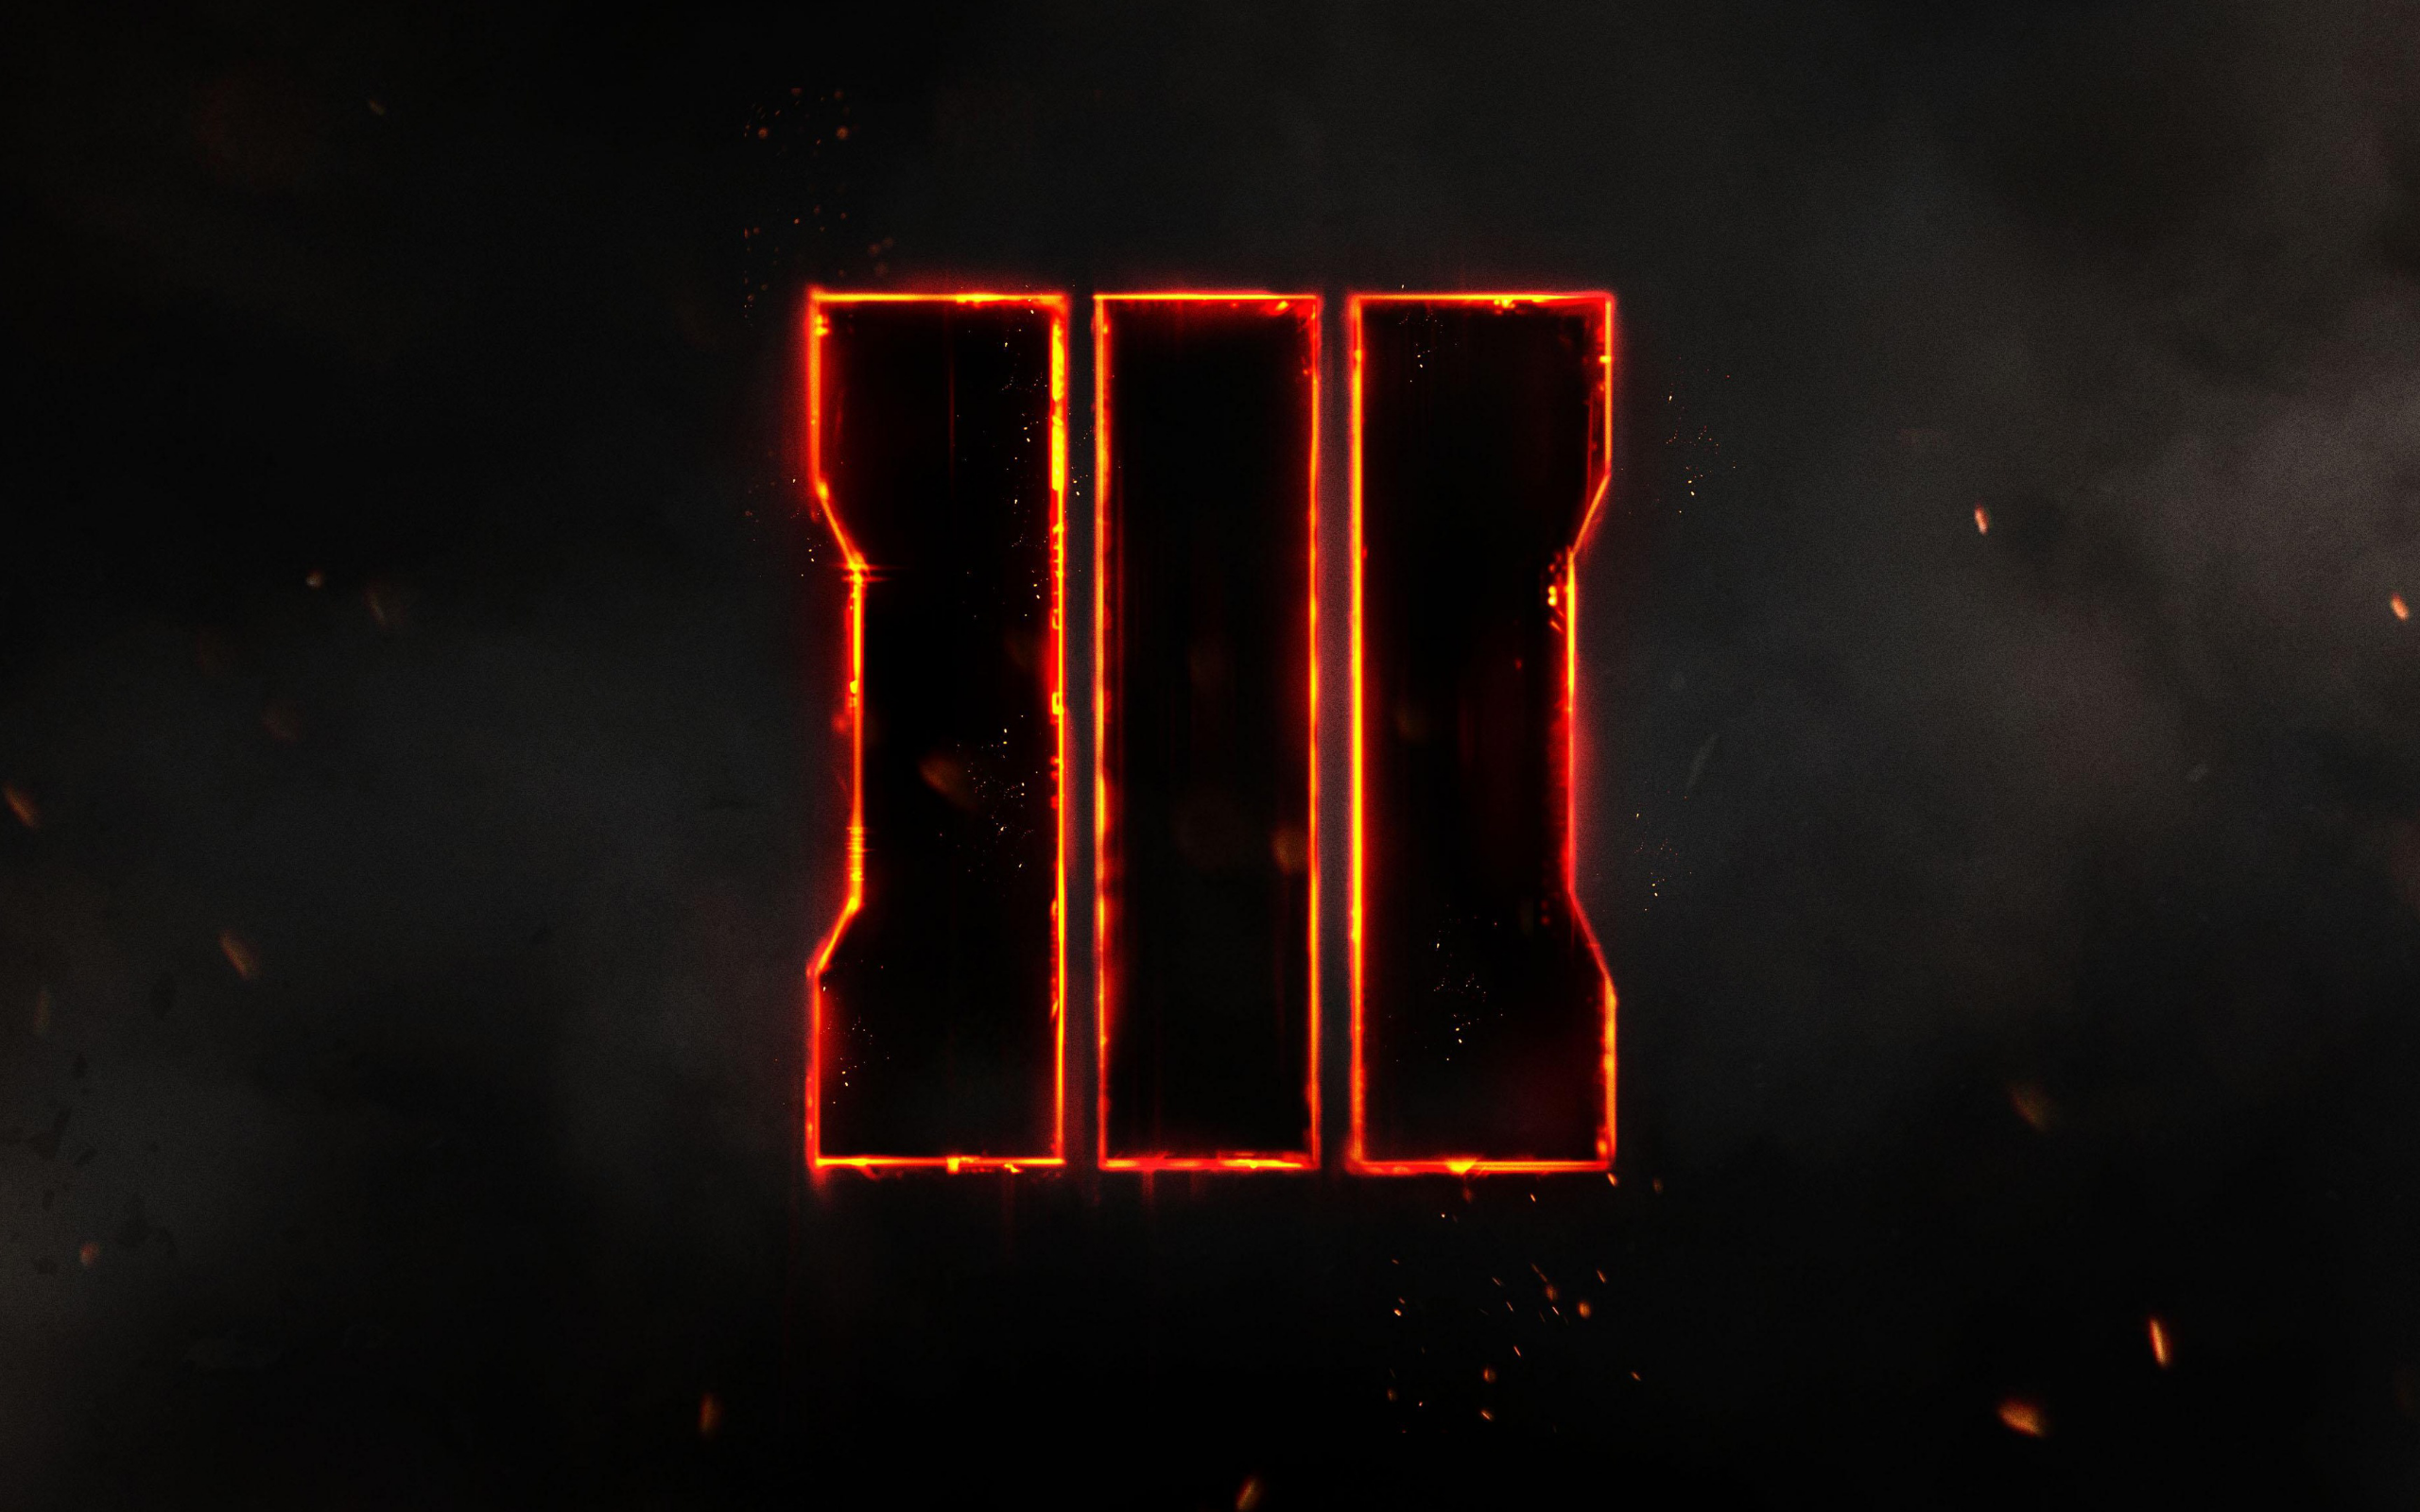 black ops iii video game a· hd wallpaper background id601898